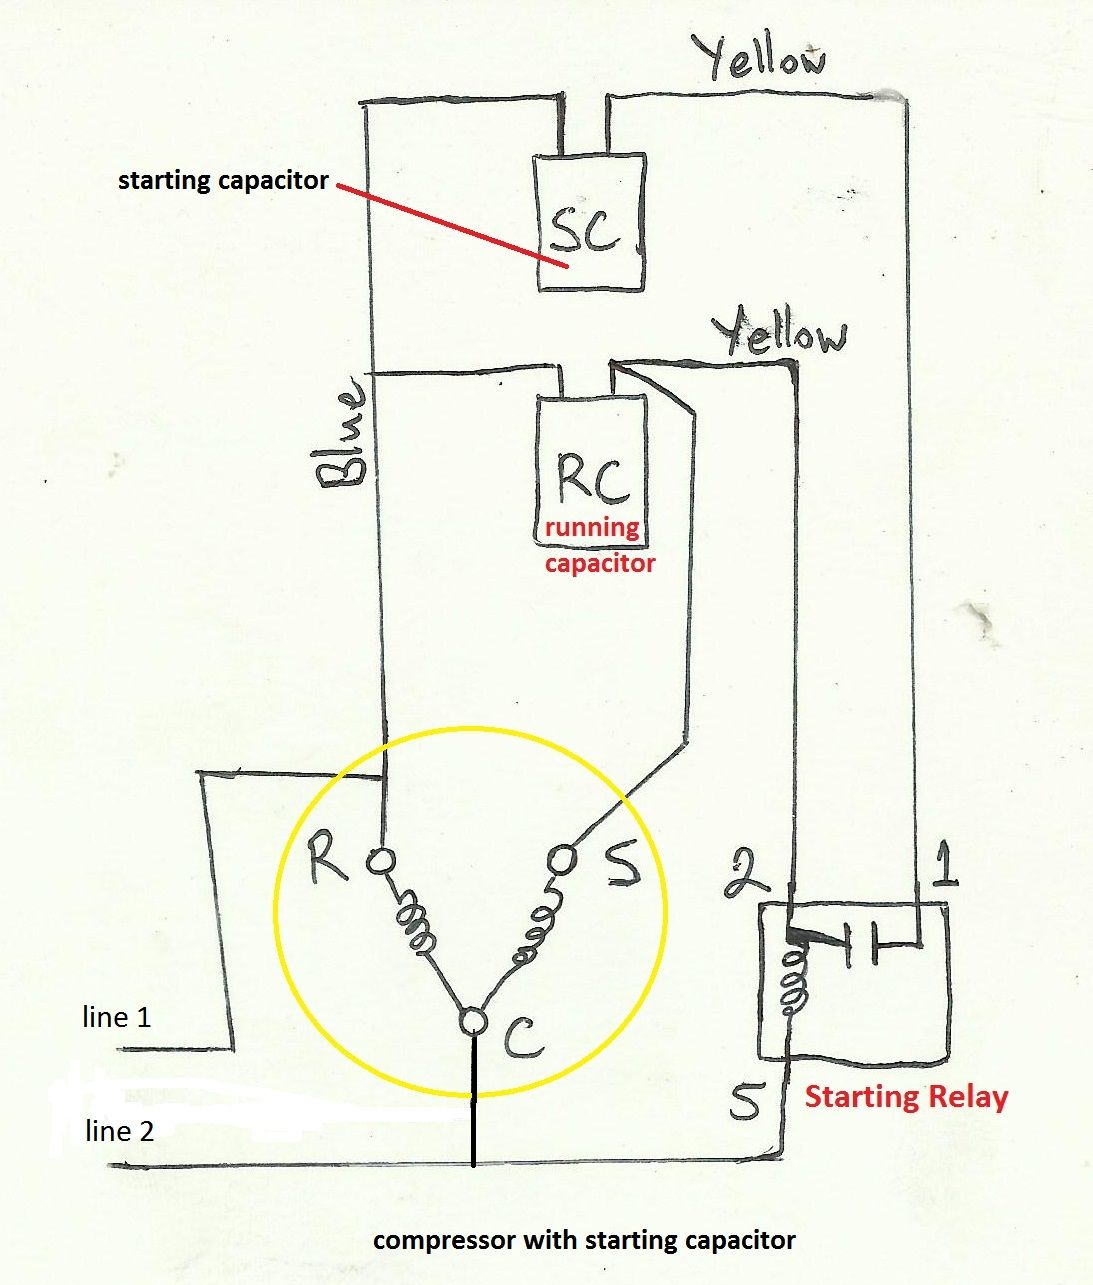 medium resolution of air compressor capacitor wiring diagram before you call a ac repair rh pinterest com american standard heat pump wiring diagram american standard electric